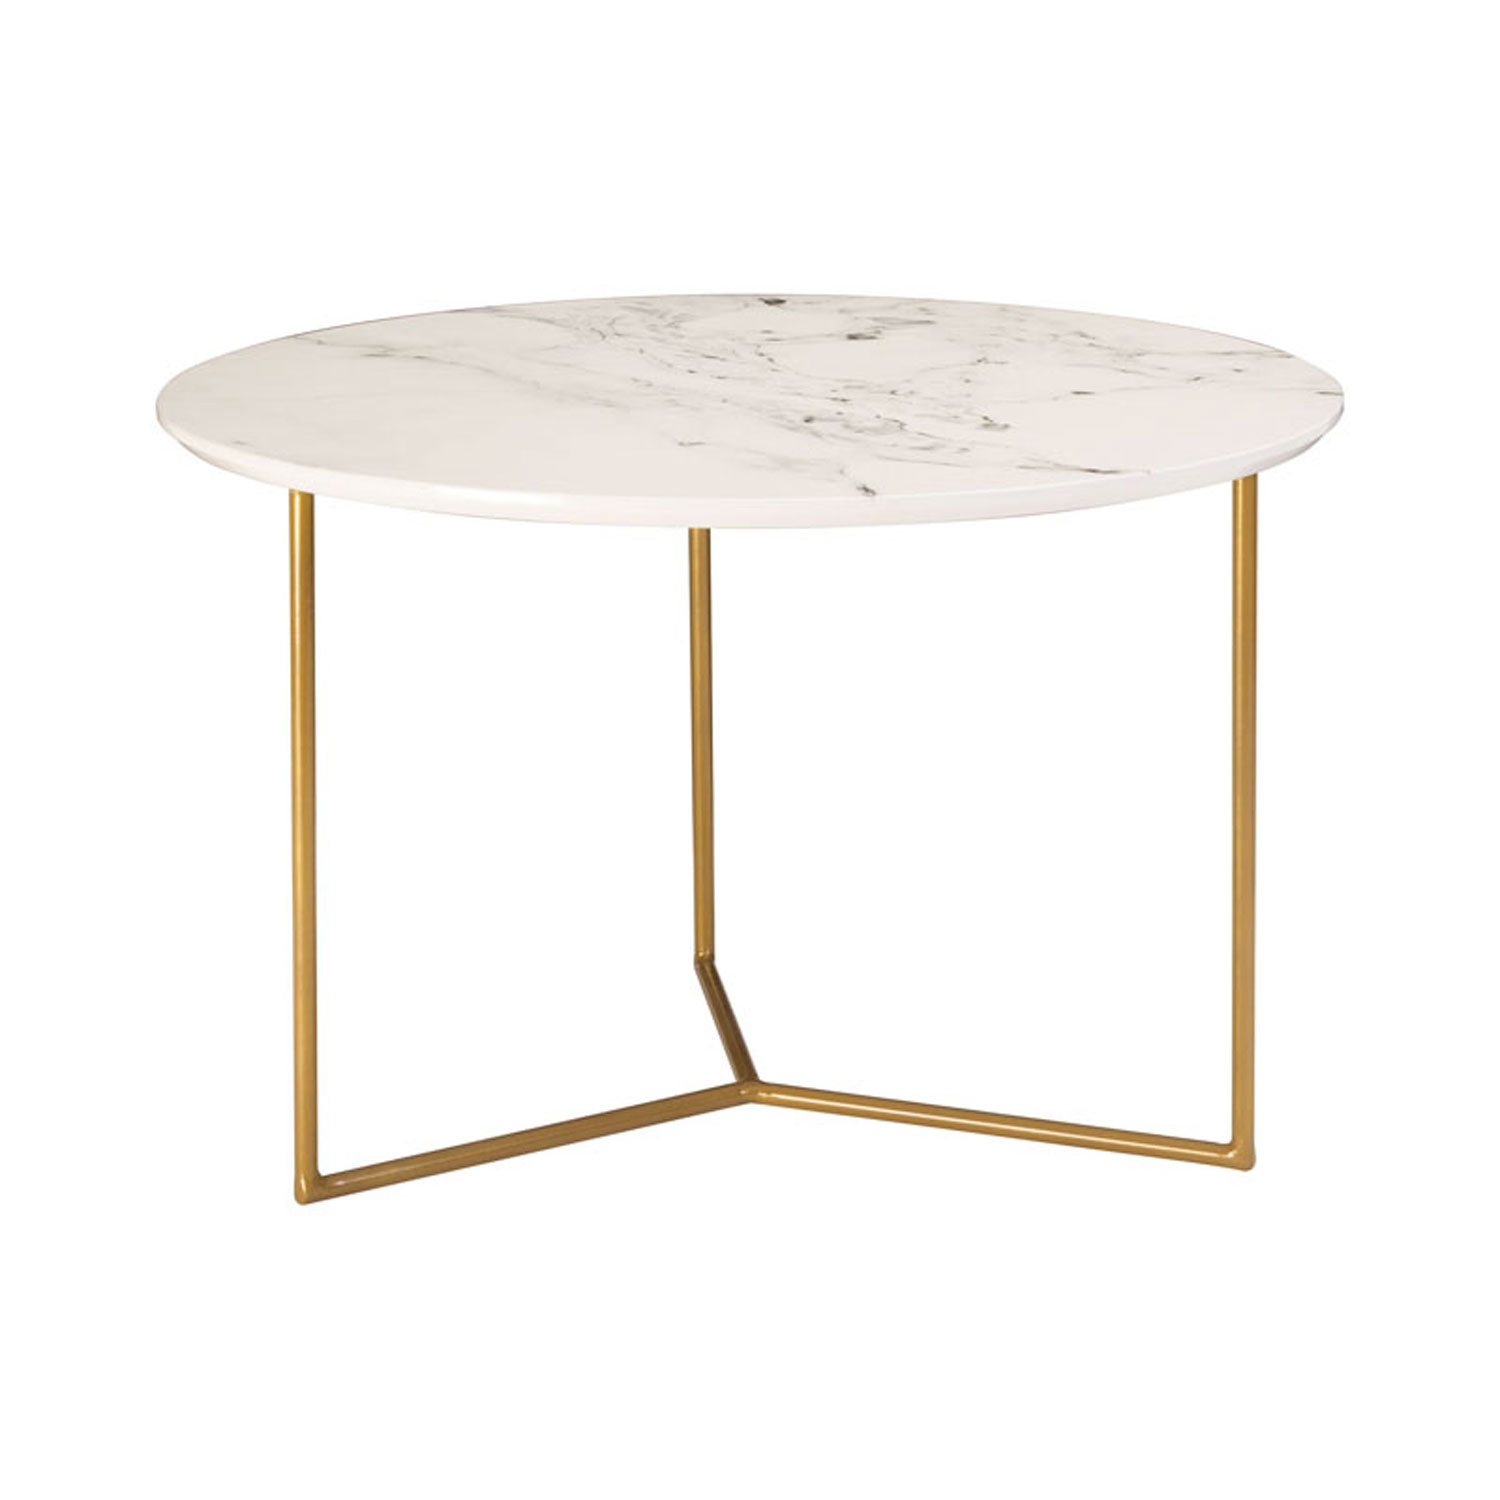 sterling industries glacier gold and white printed marble accent table hover zoom small industrial coffee inch round cloth tablecloths outdoor glass metal end tables home decor